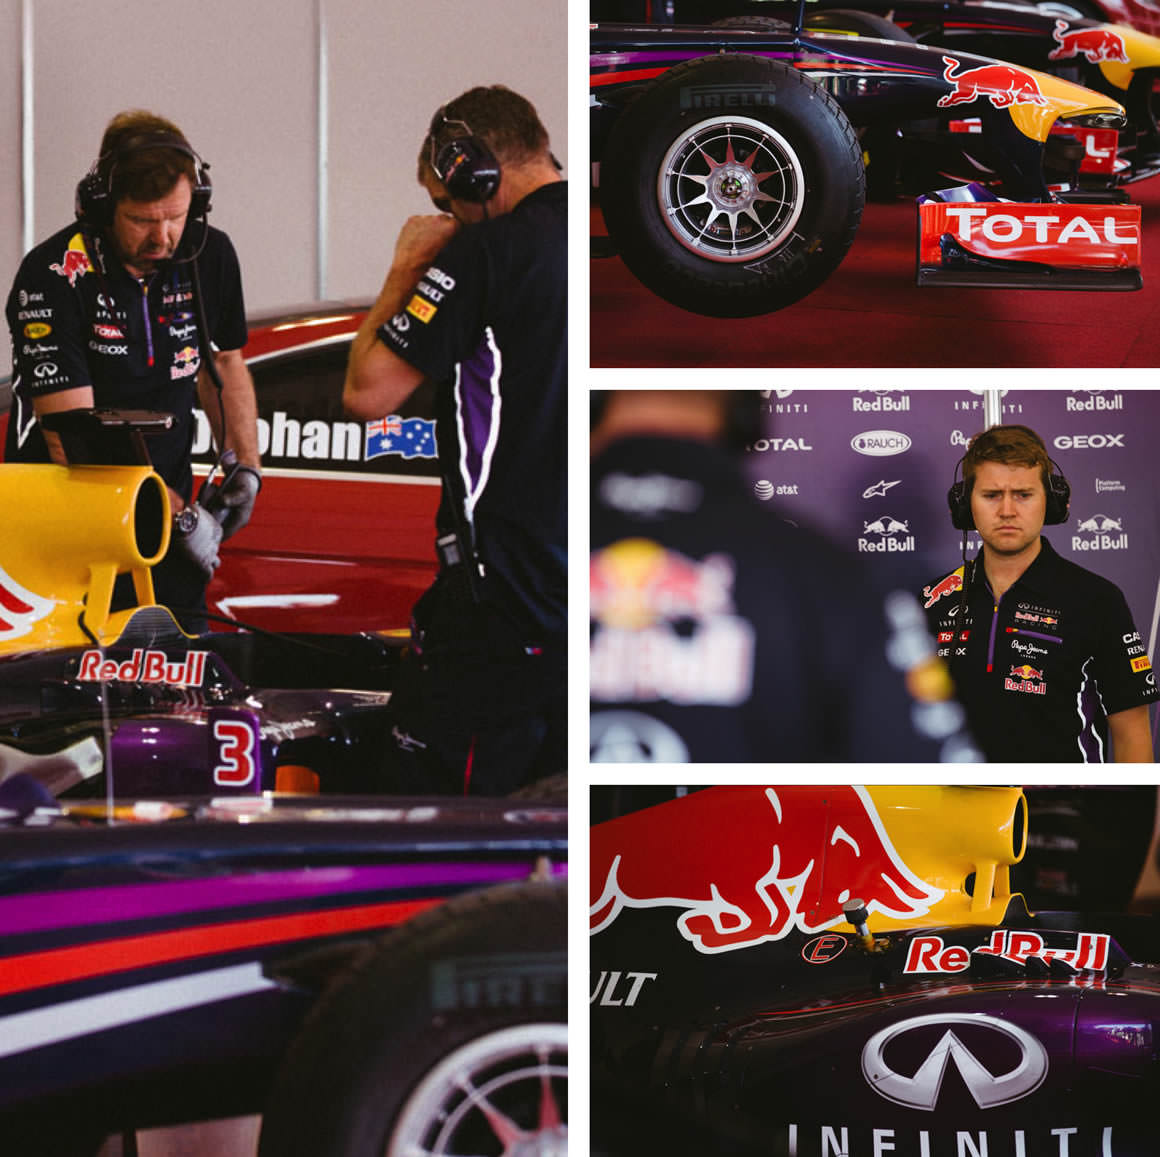 Red Bull Racing Team - Melbourne 2014